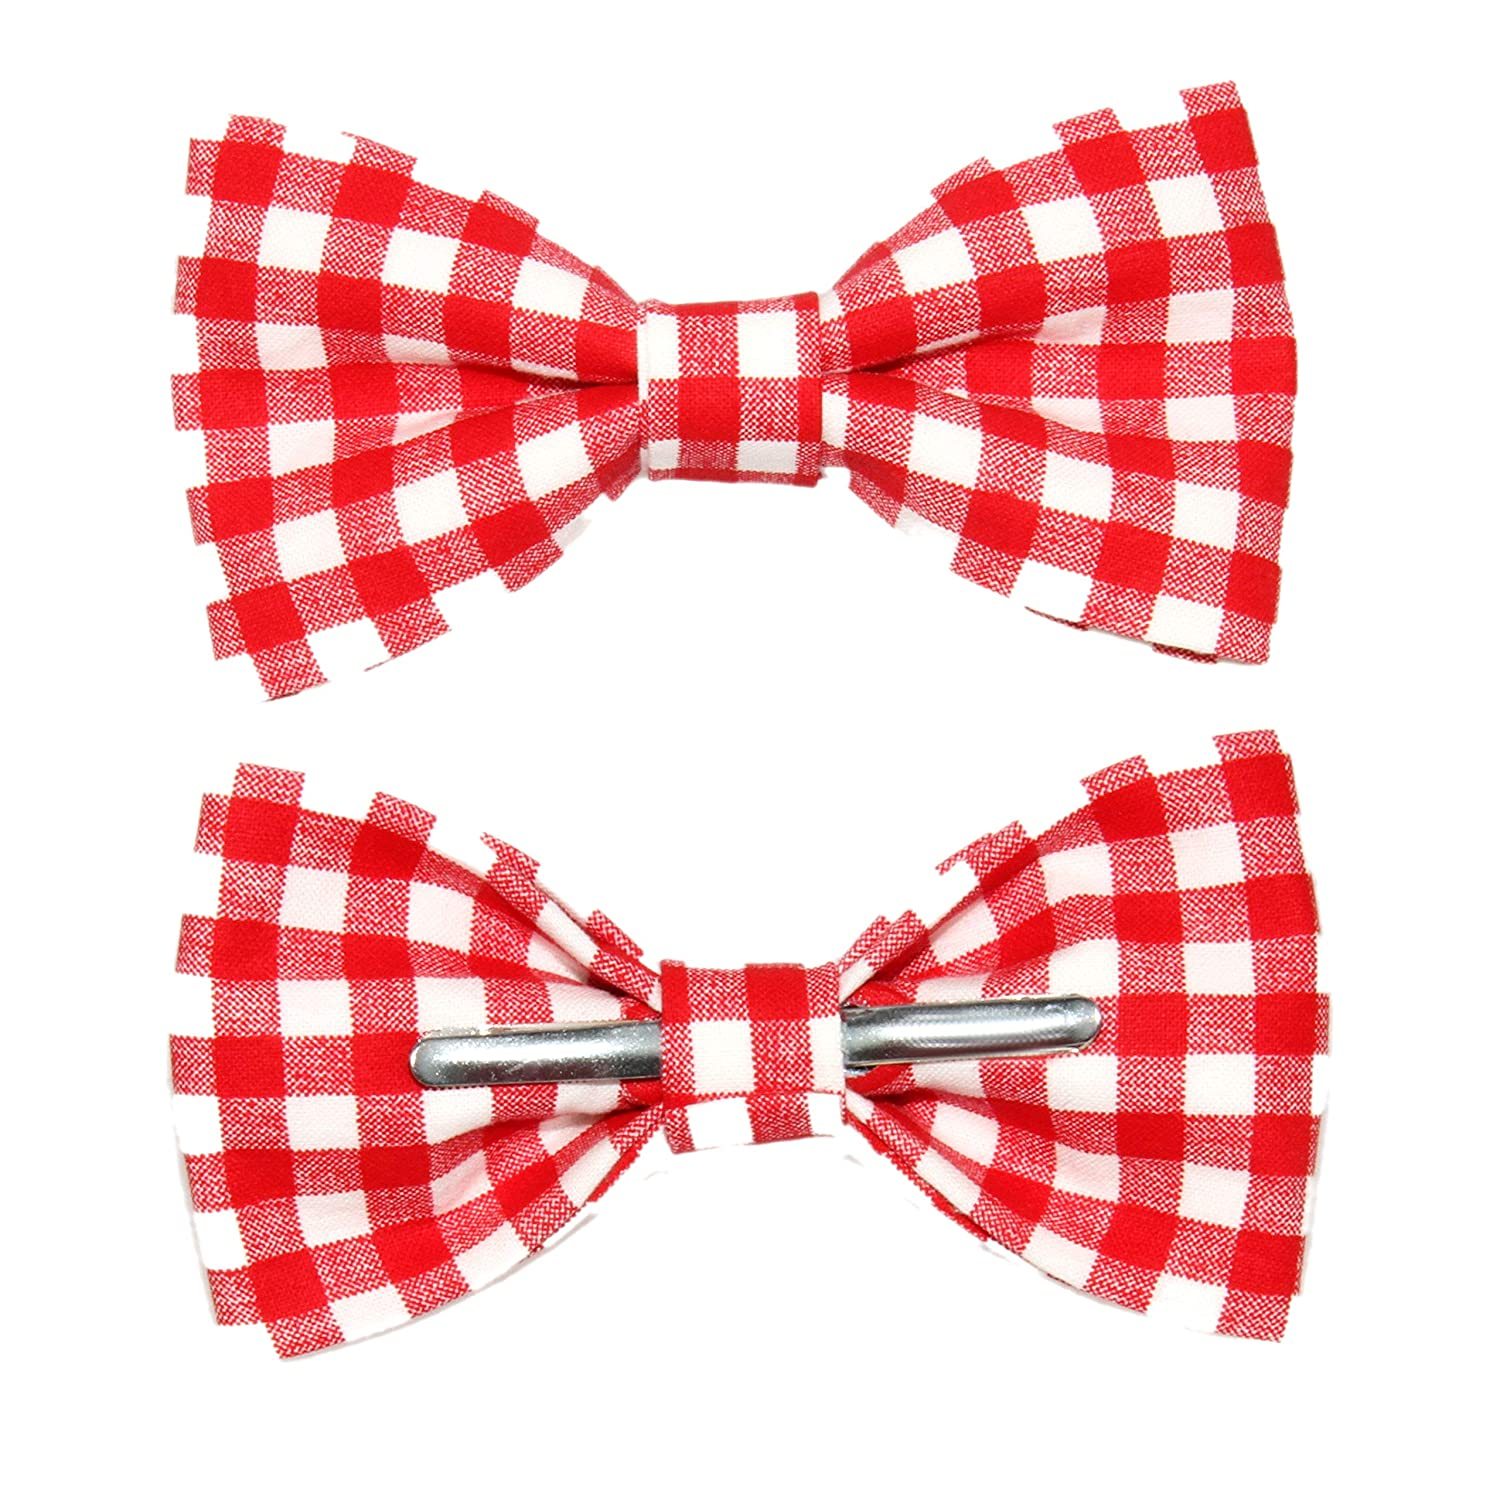 541cbcf4bfa6 Men's Red and White Picnic Gingham Clip On Cotton Bow Tie by amy2004marie  at Amazon Men's Clothing store: Wedding Ceremony Accessories